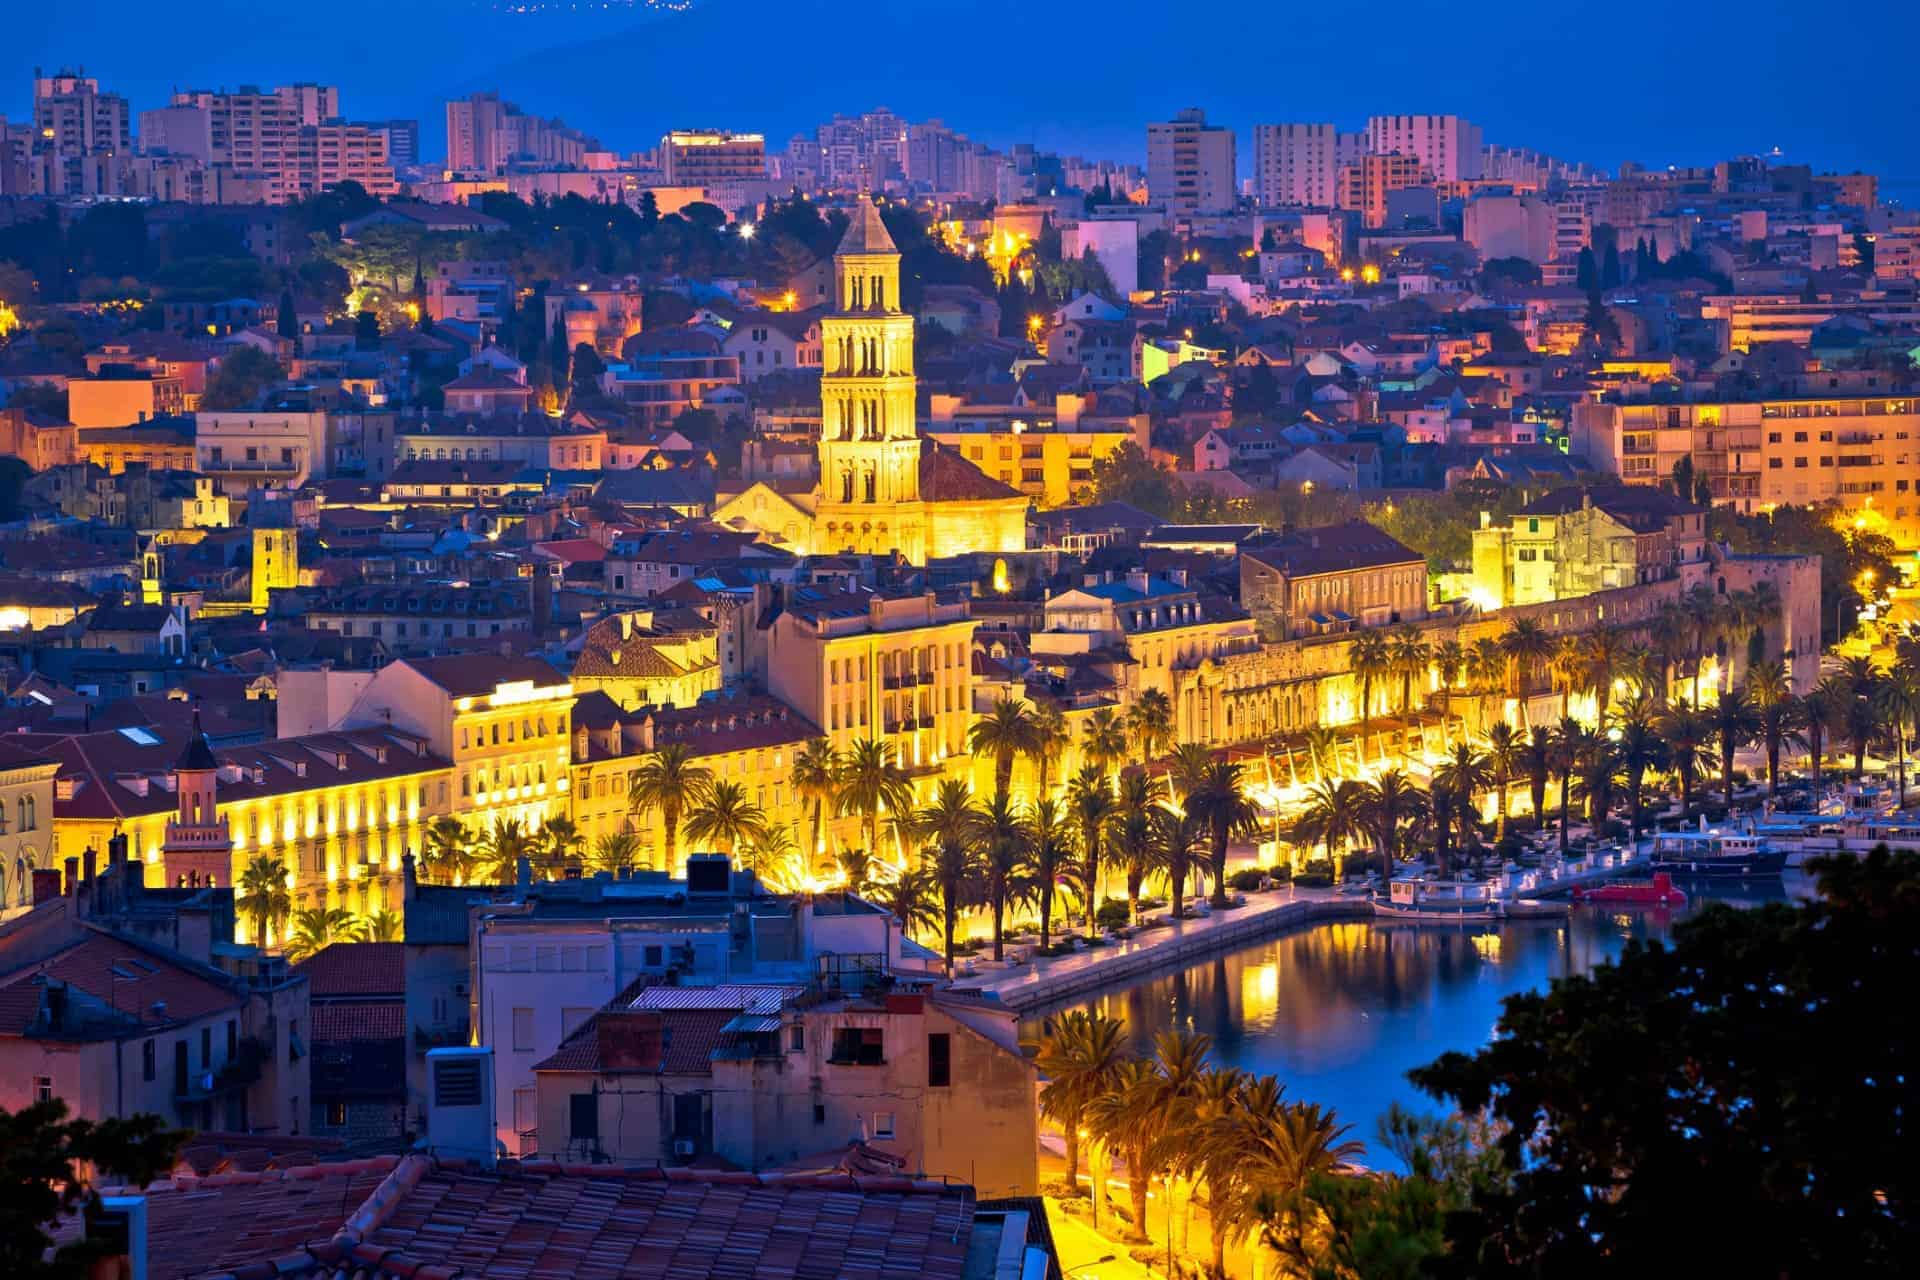 The city of Split, Croatia at dawn, with an aerial view of Diocletian's Palace